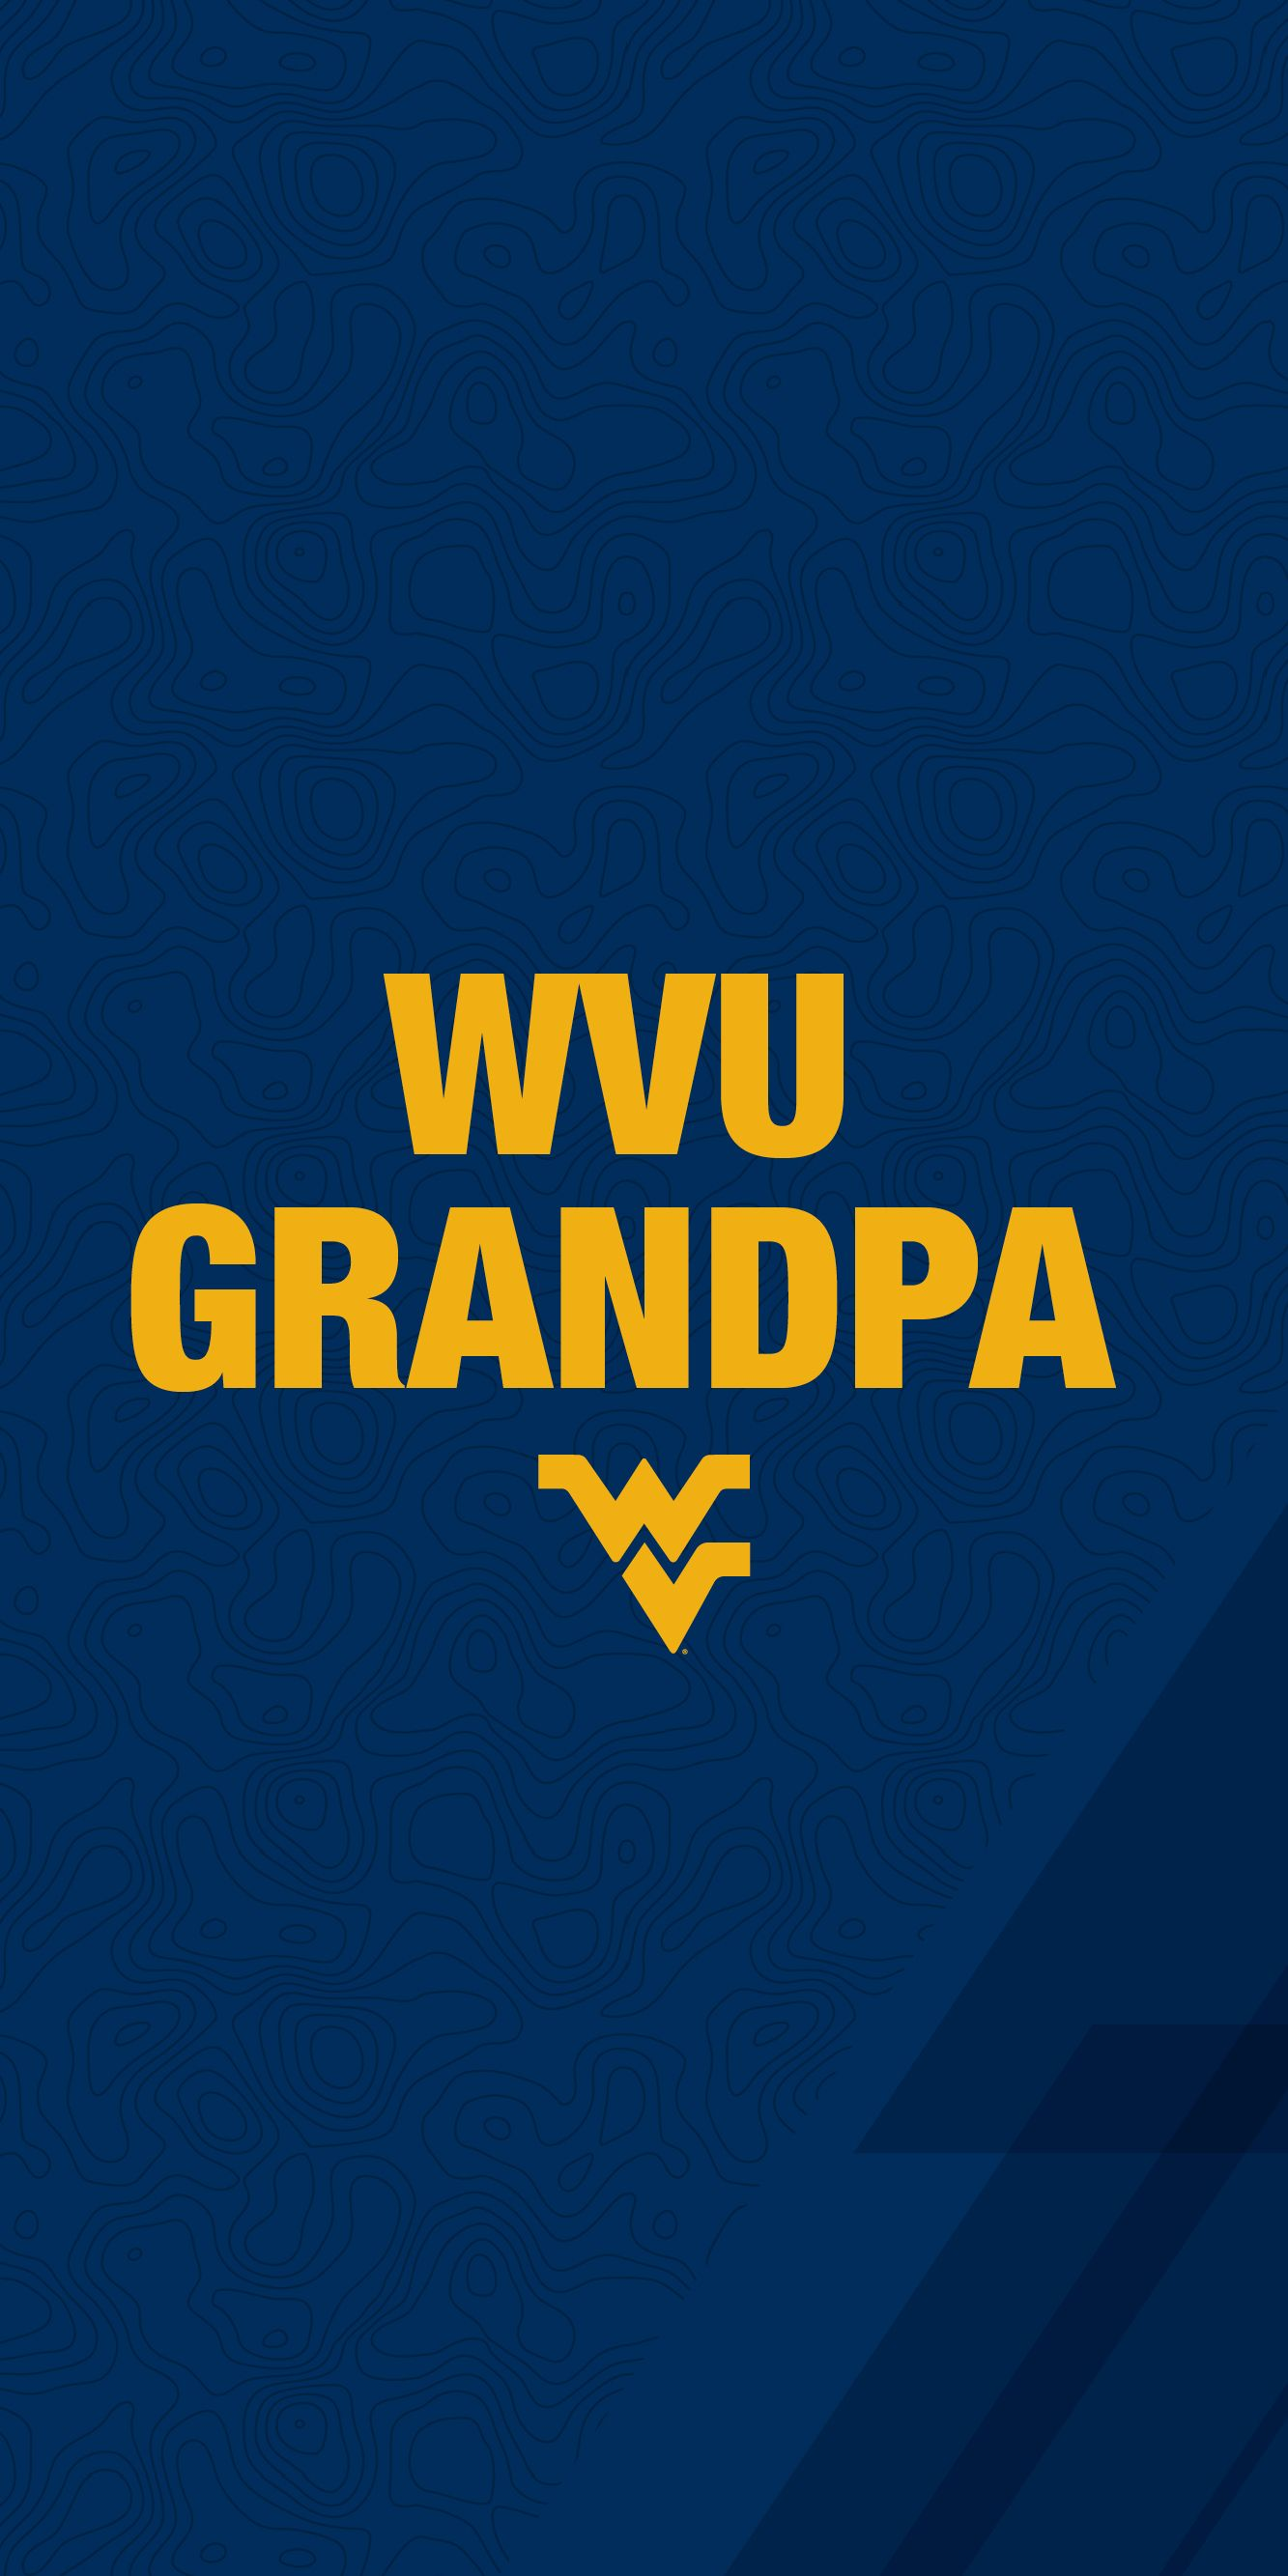 WVU Grandpa mobile wallpaper